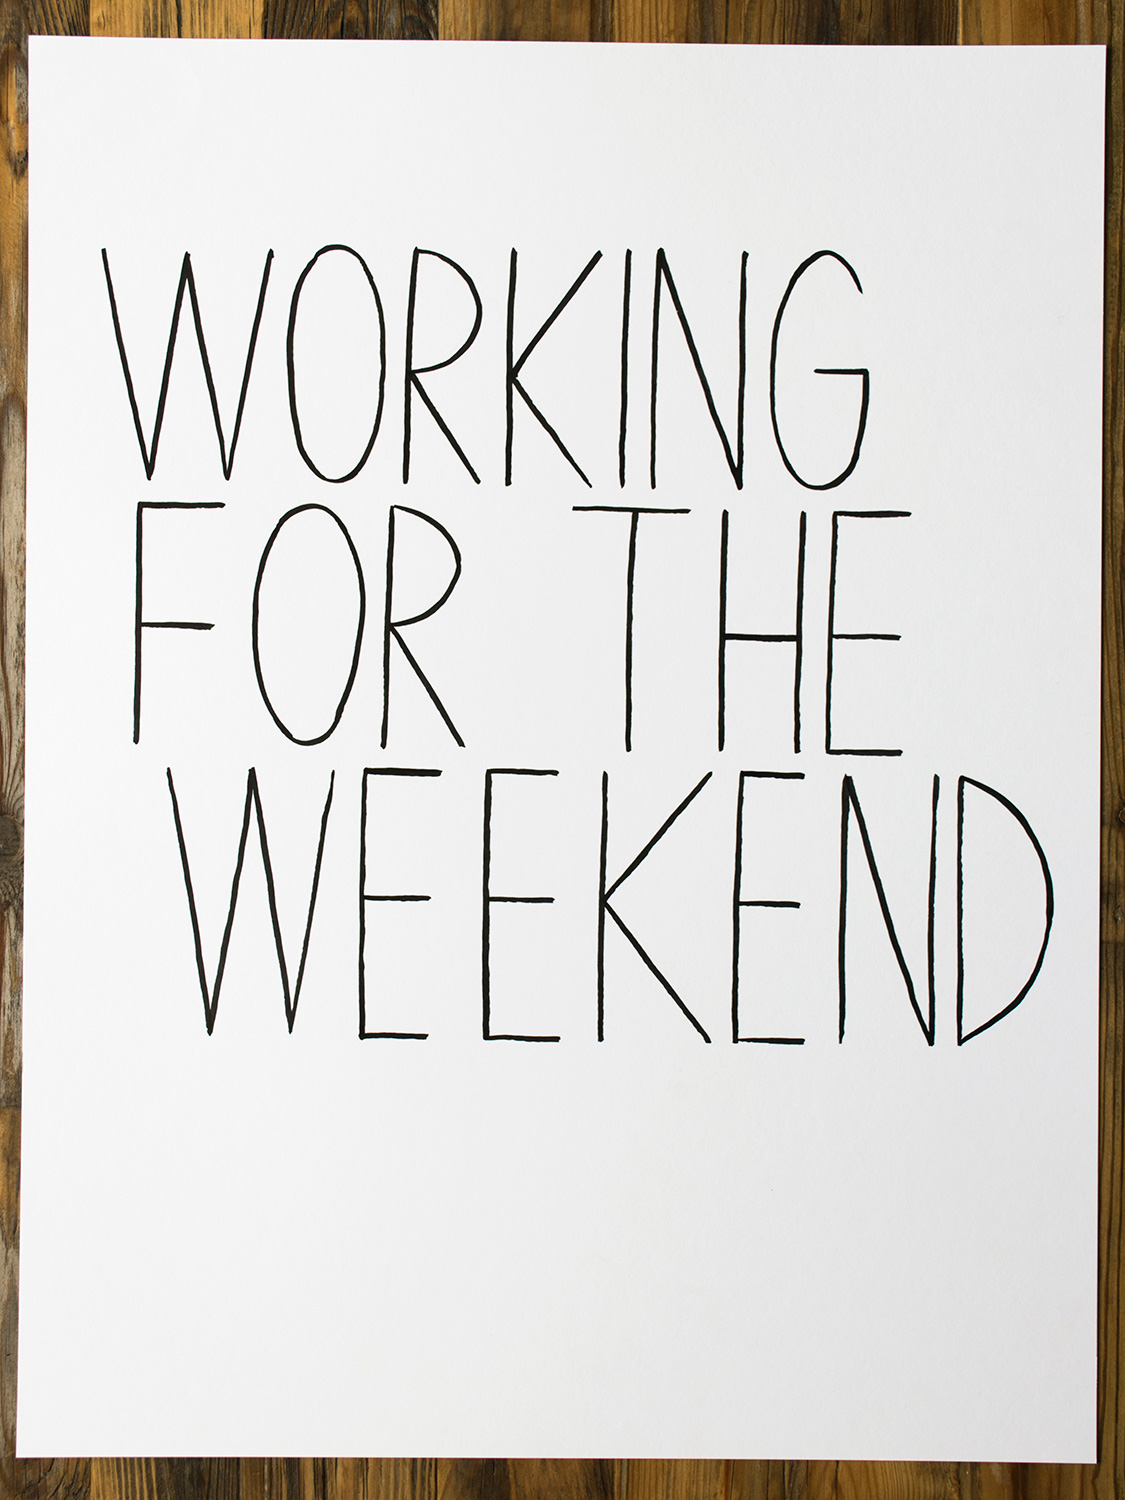 working_for_the_weekend-1500x1125.jpg